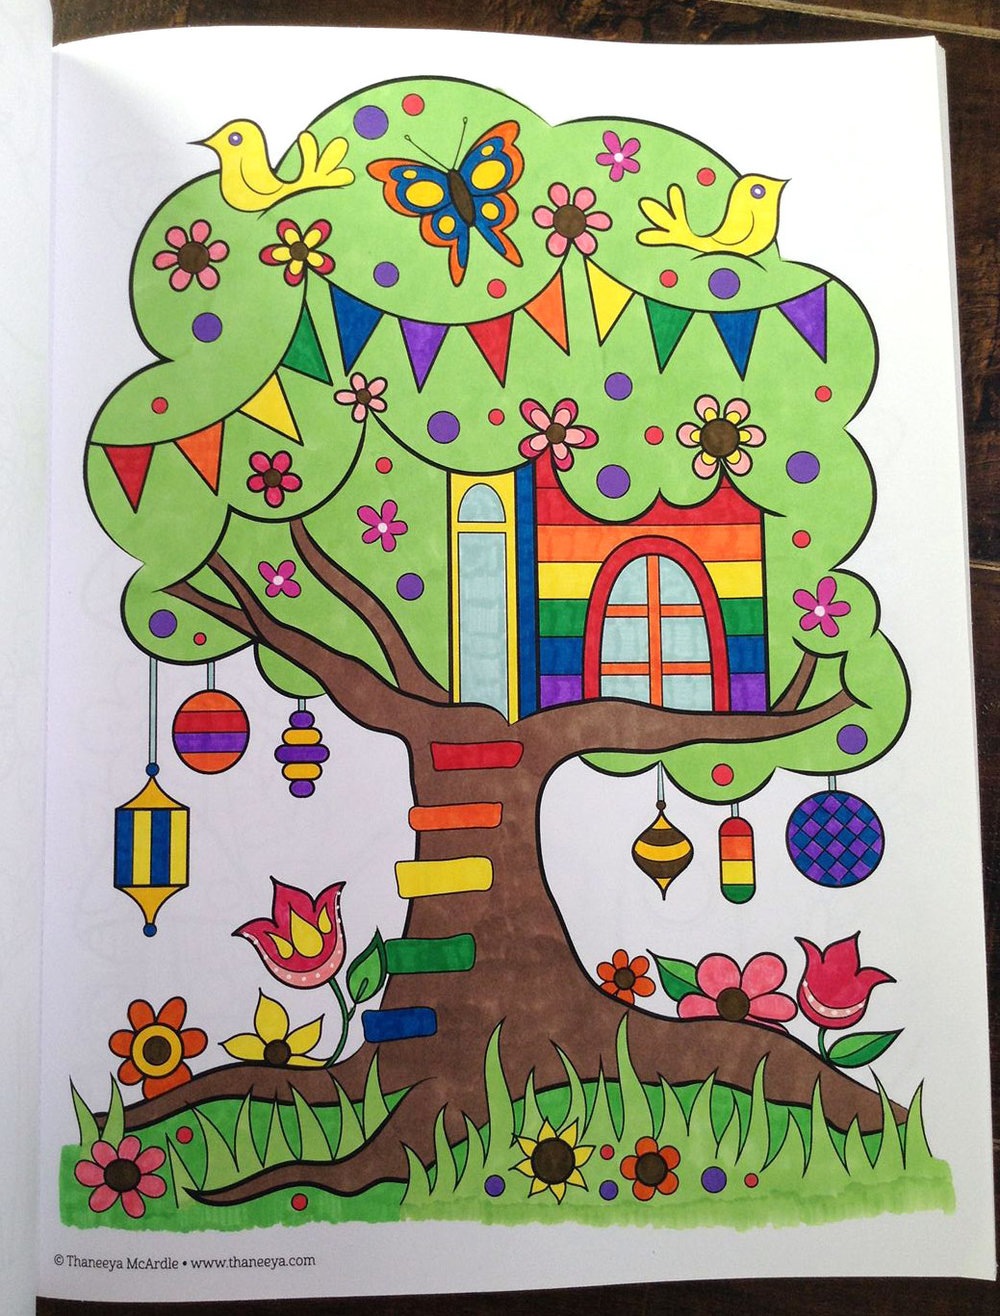 treehouse-coloring-page-by-Thaneeya-McArdle-colored-by-TammyM.jpg